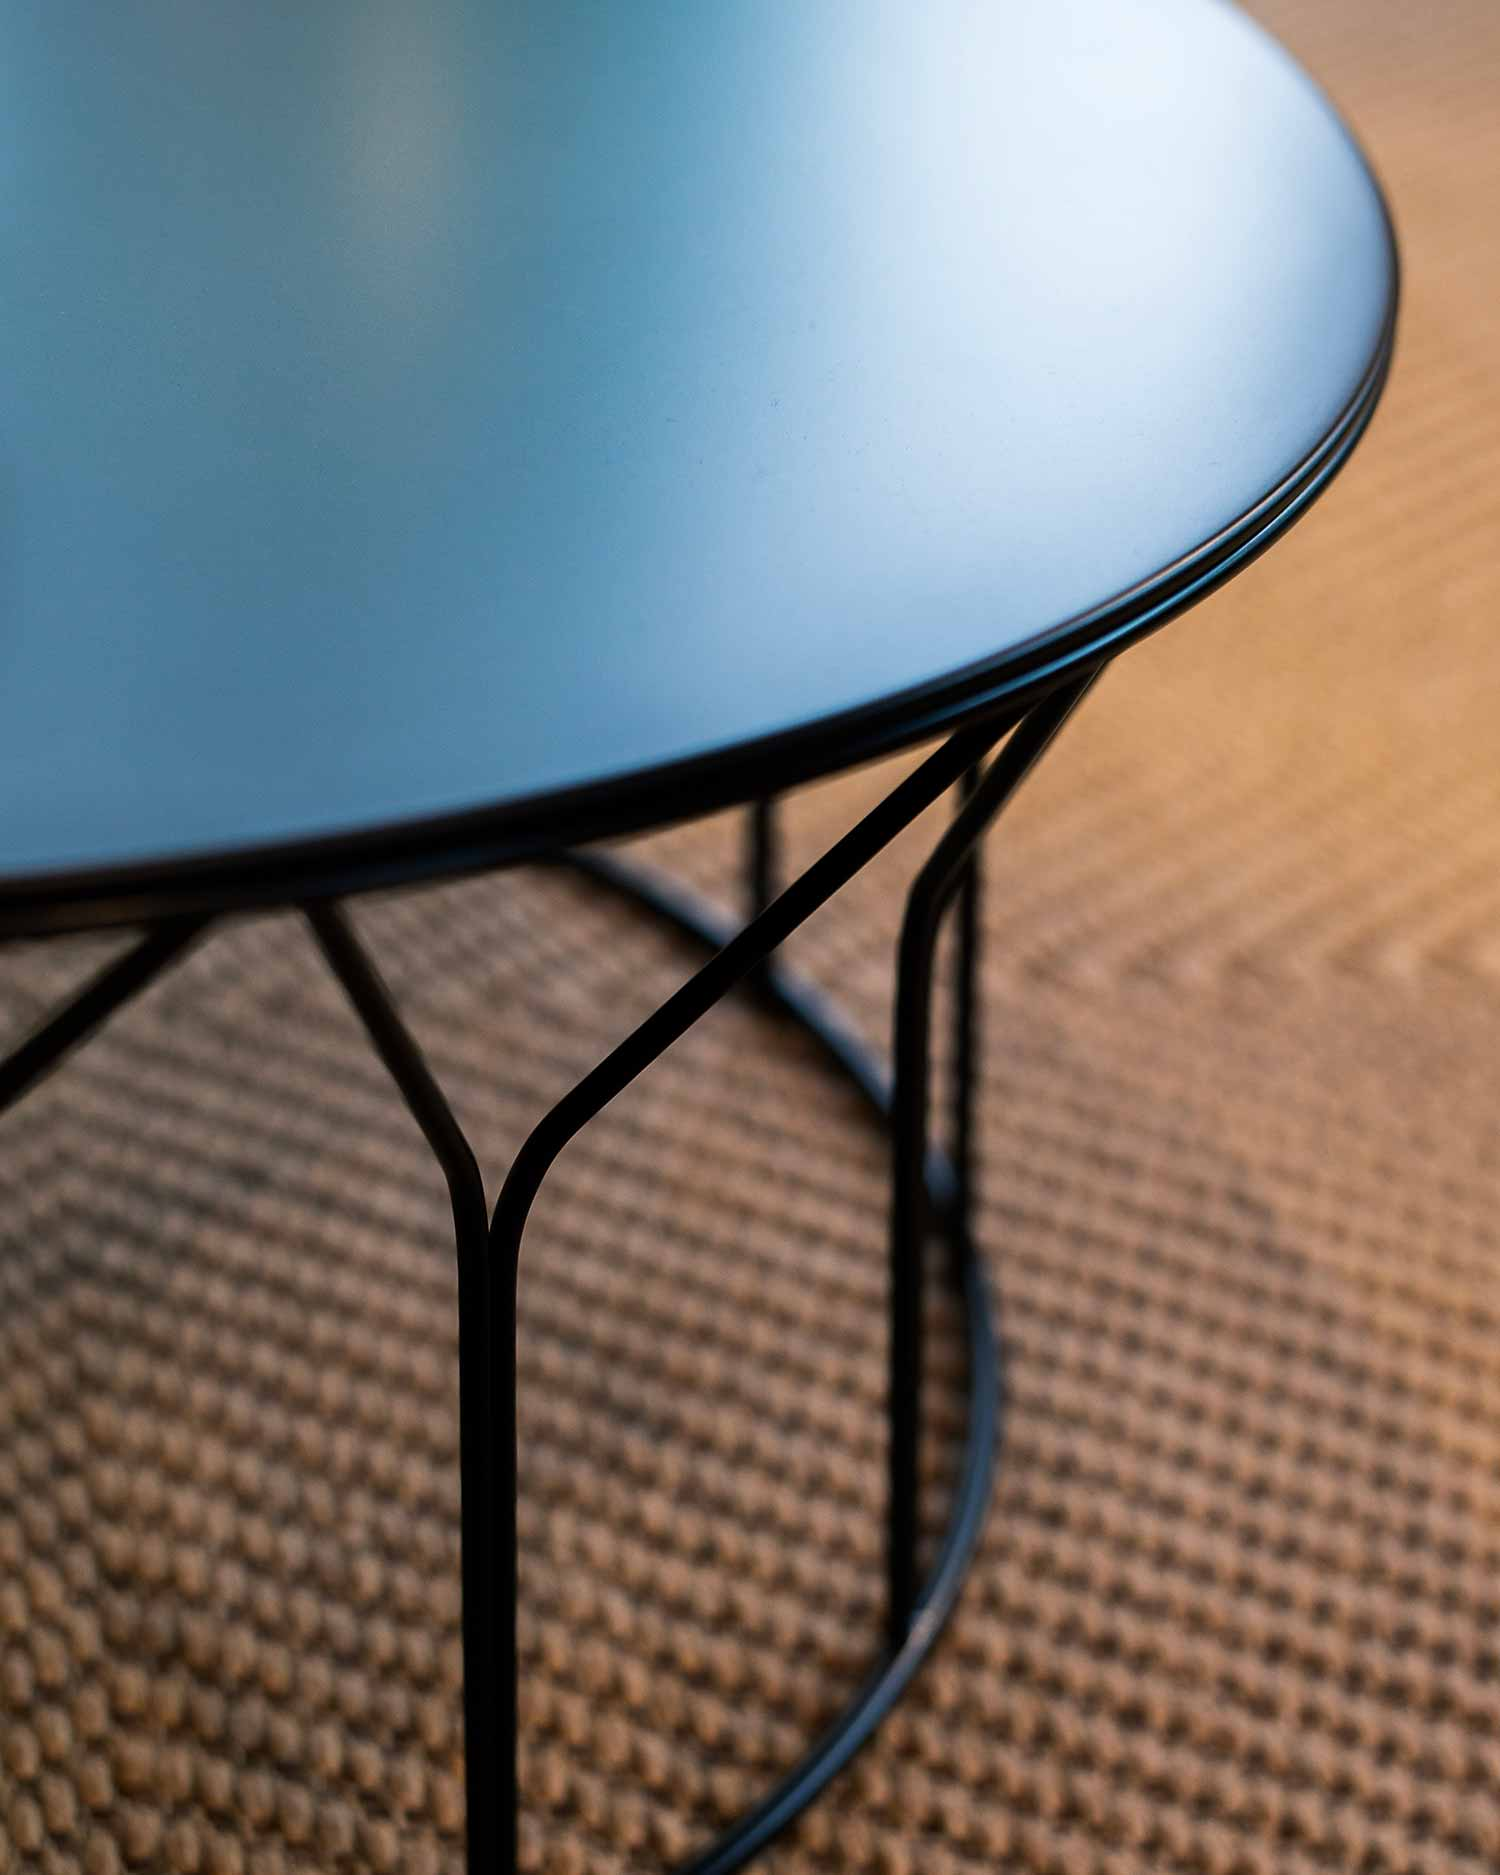 luxury designer table close up offecct circus table blue shiny surface top designers saturday oslo